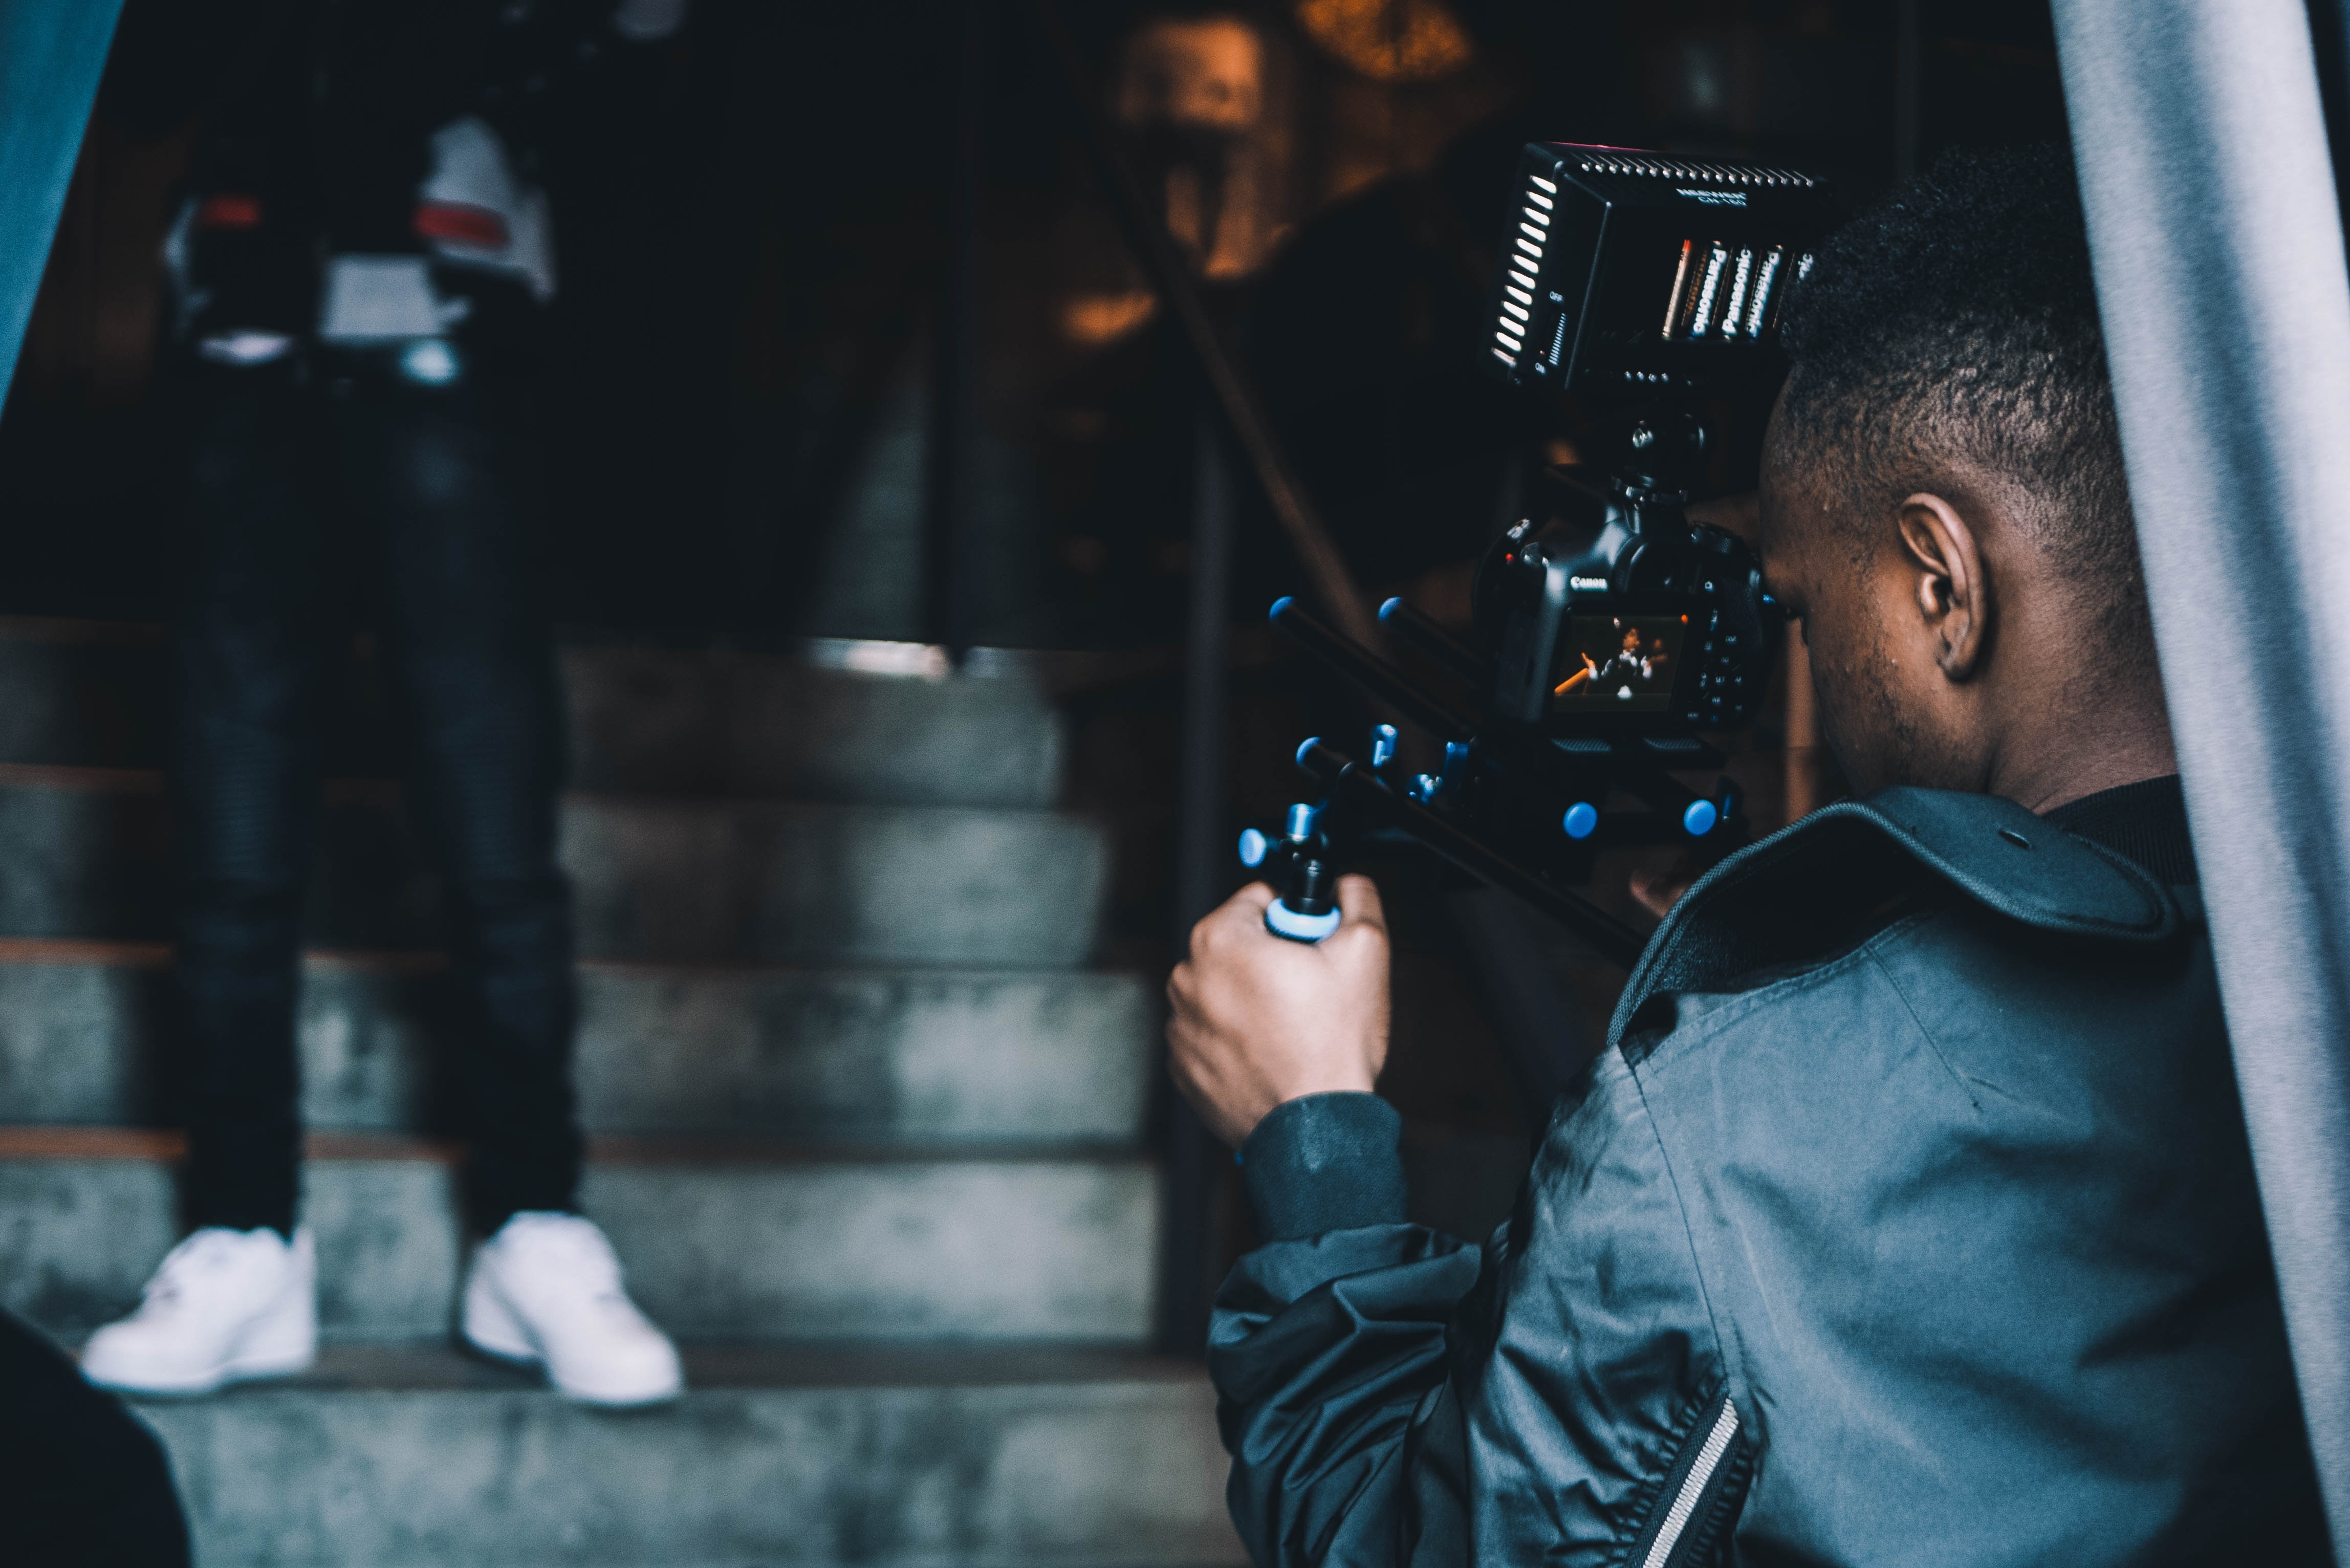 HOW TO CREATE HIGH-QUALITY VIDEOS FOR SOCIAL MEDIA